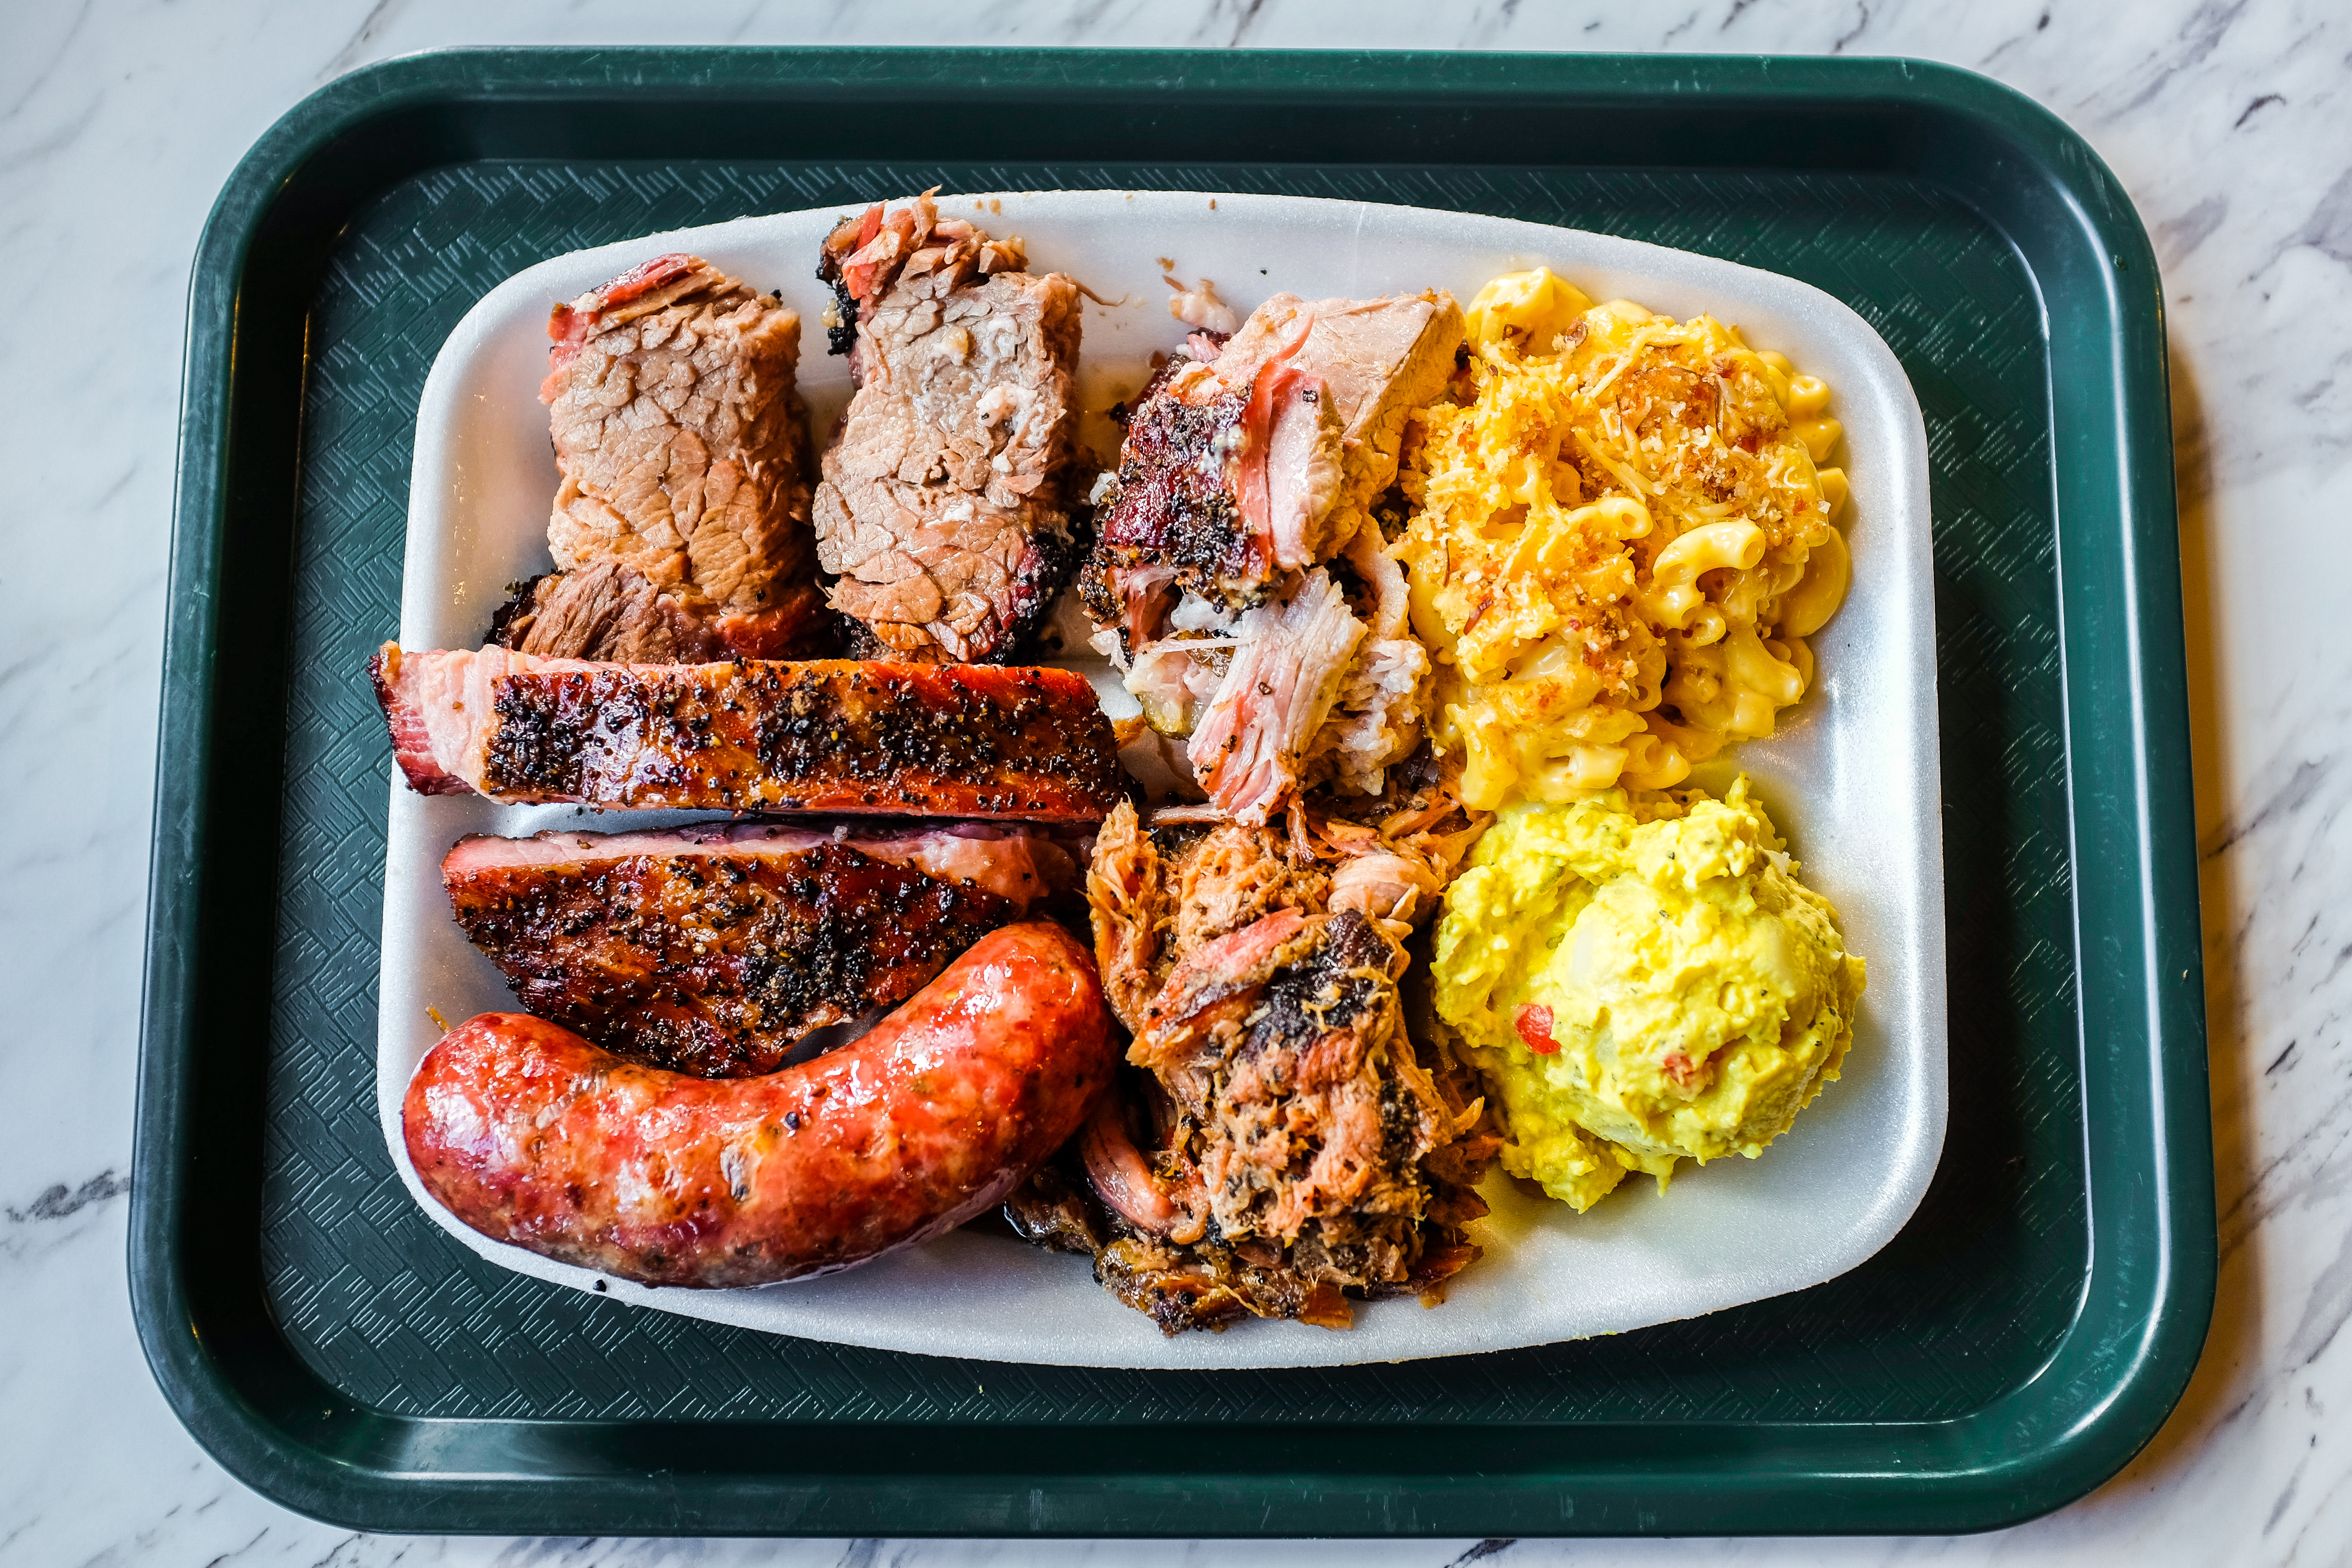 18 Reasons Your Next Meal Should Be in Houston